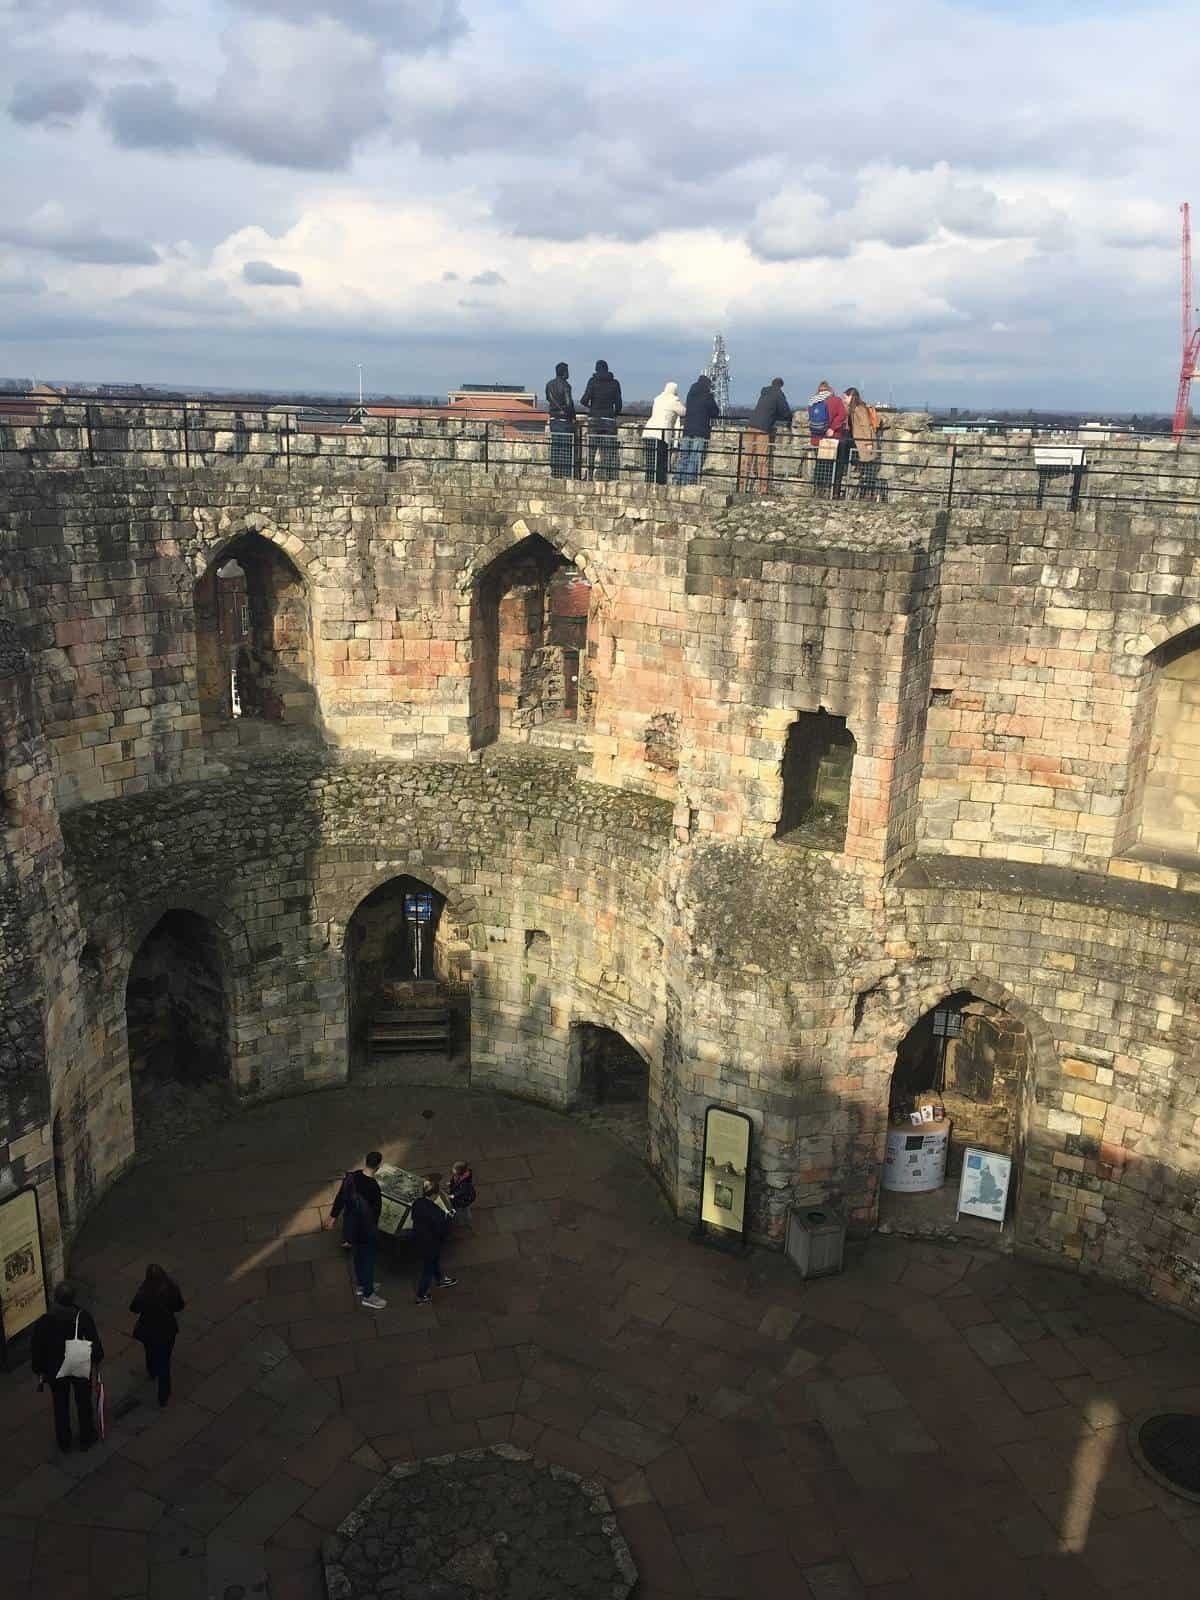 Inside Clifford's Tower in York